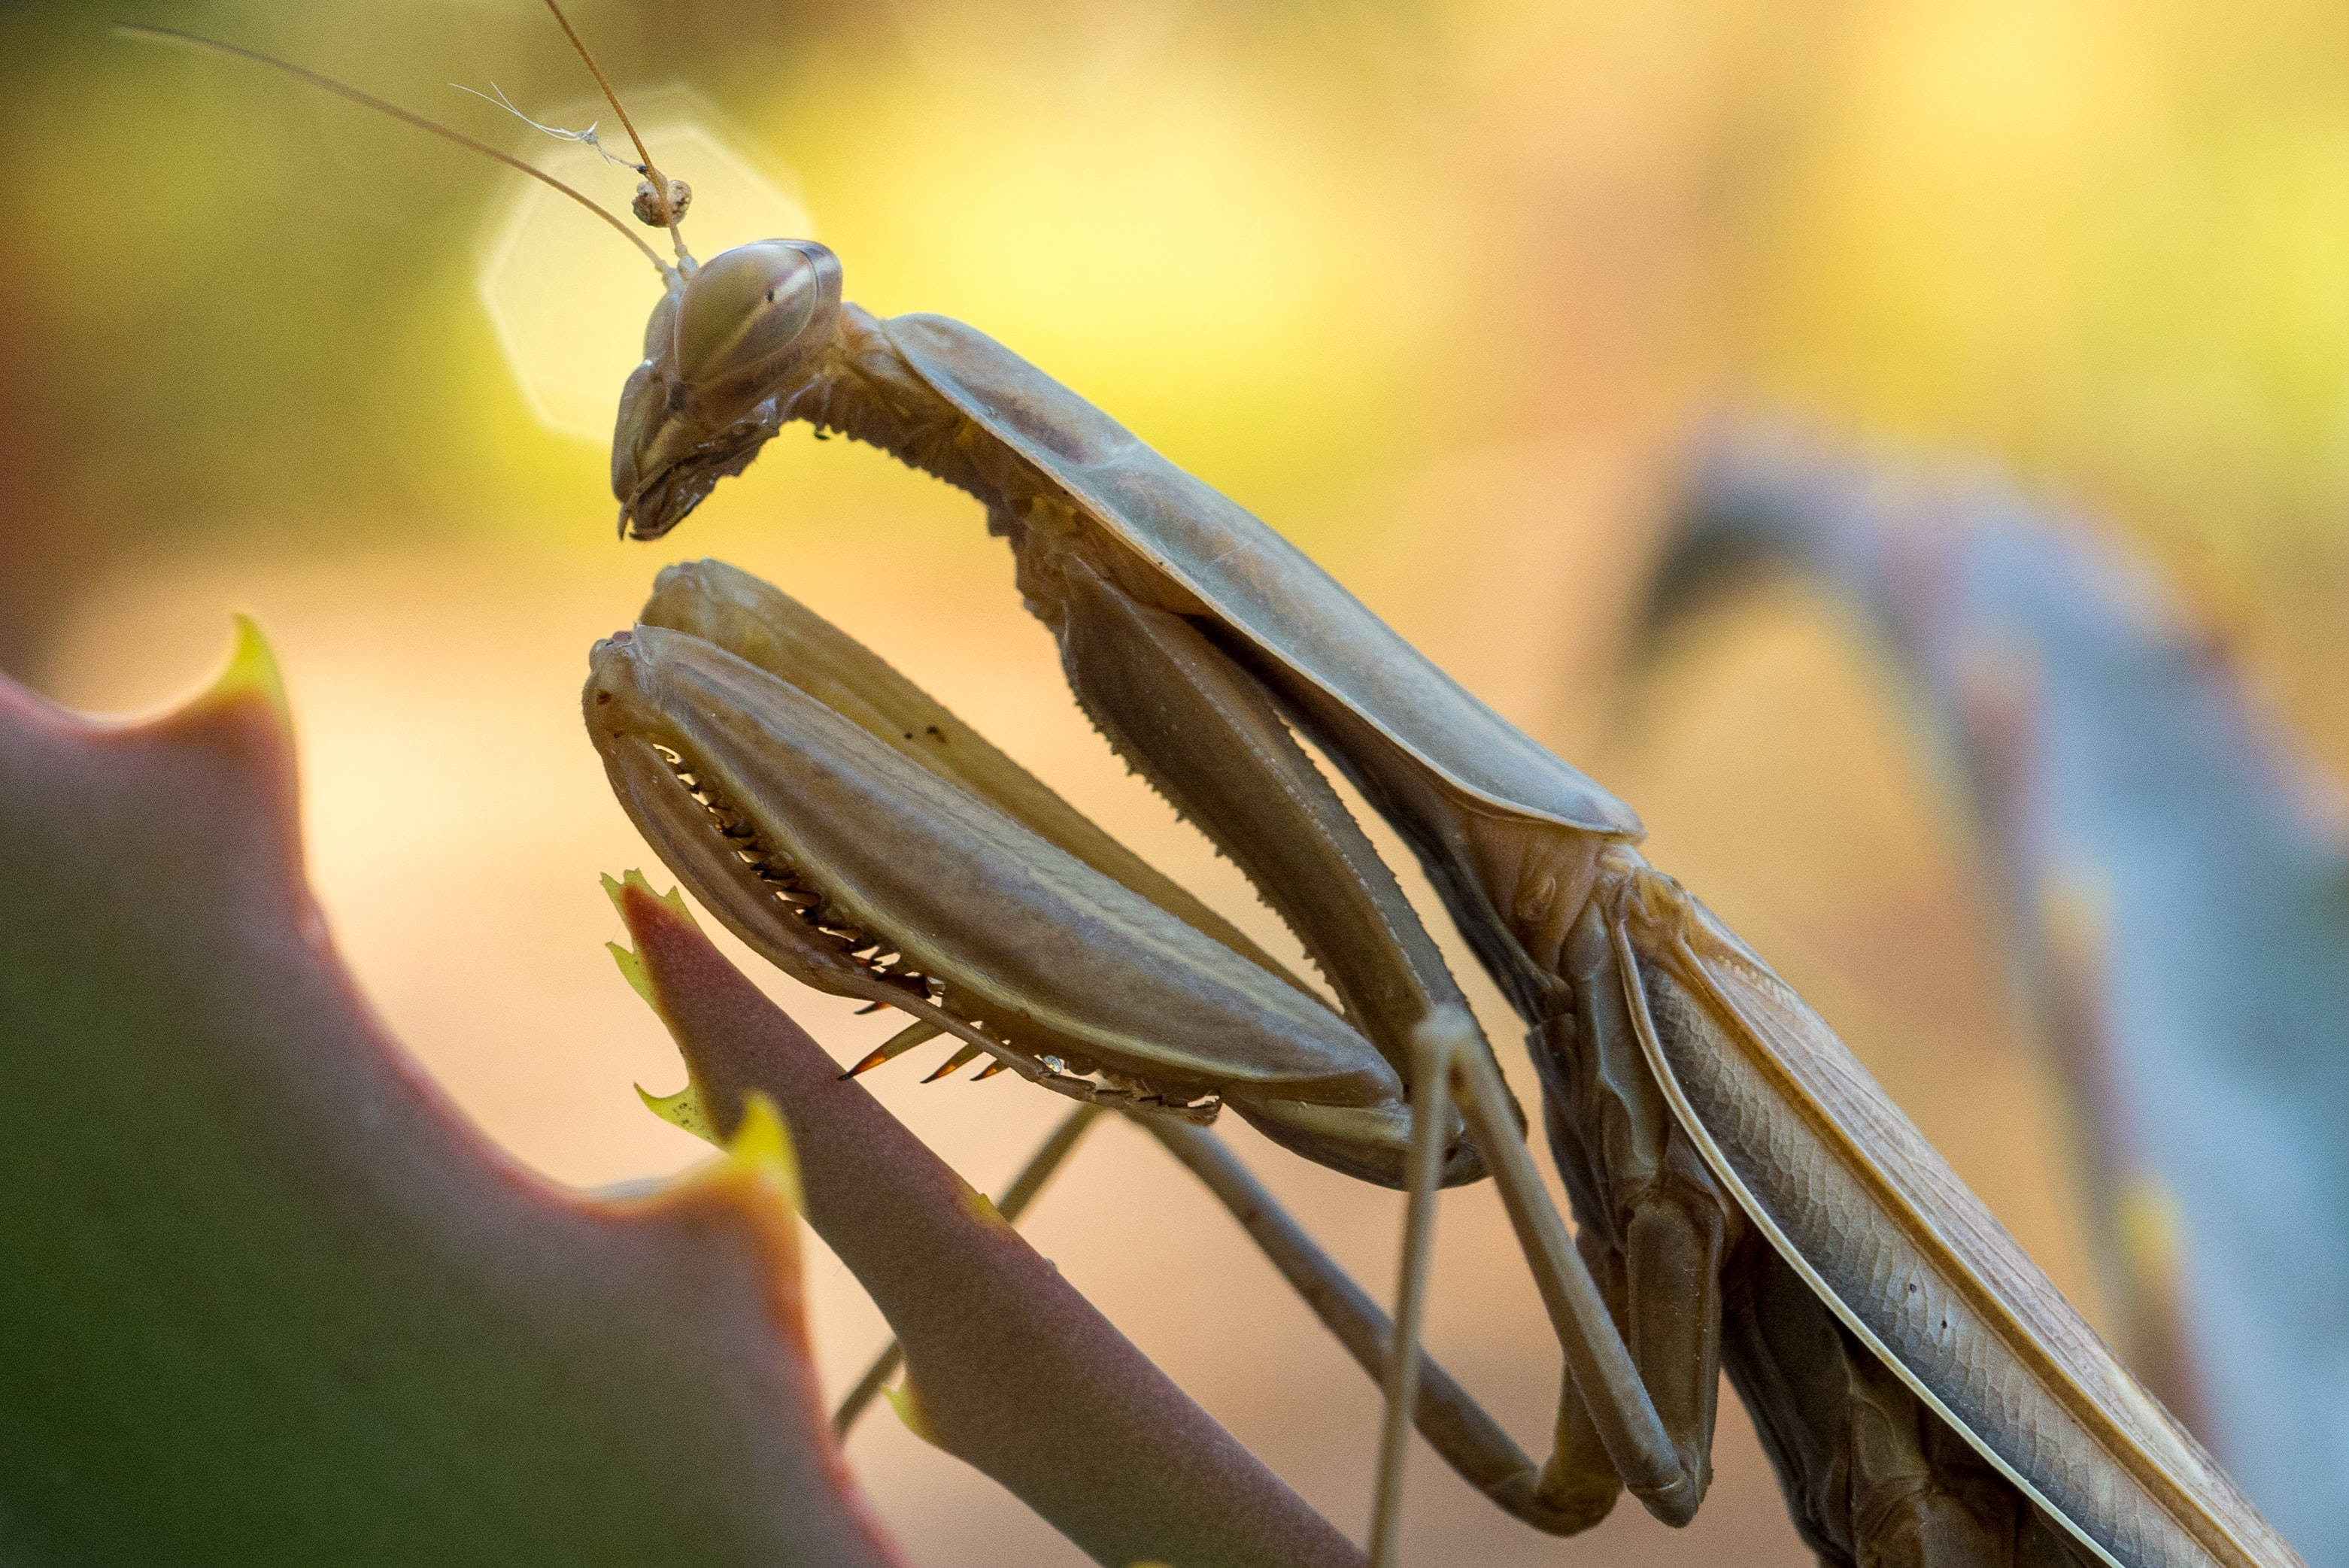 gray praying mantis micro photography